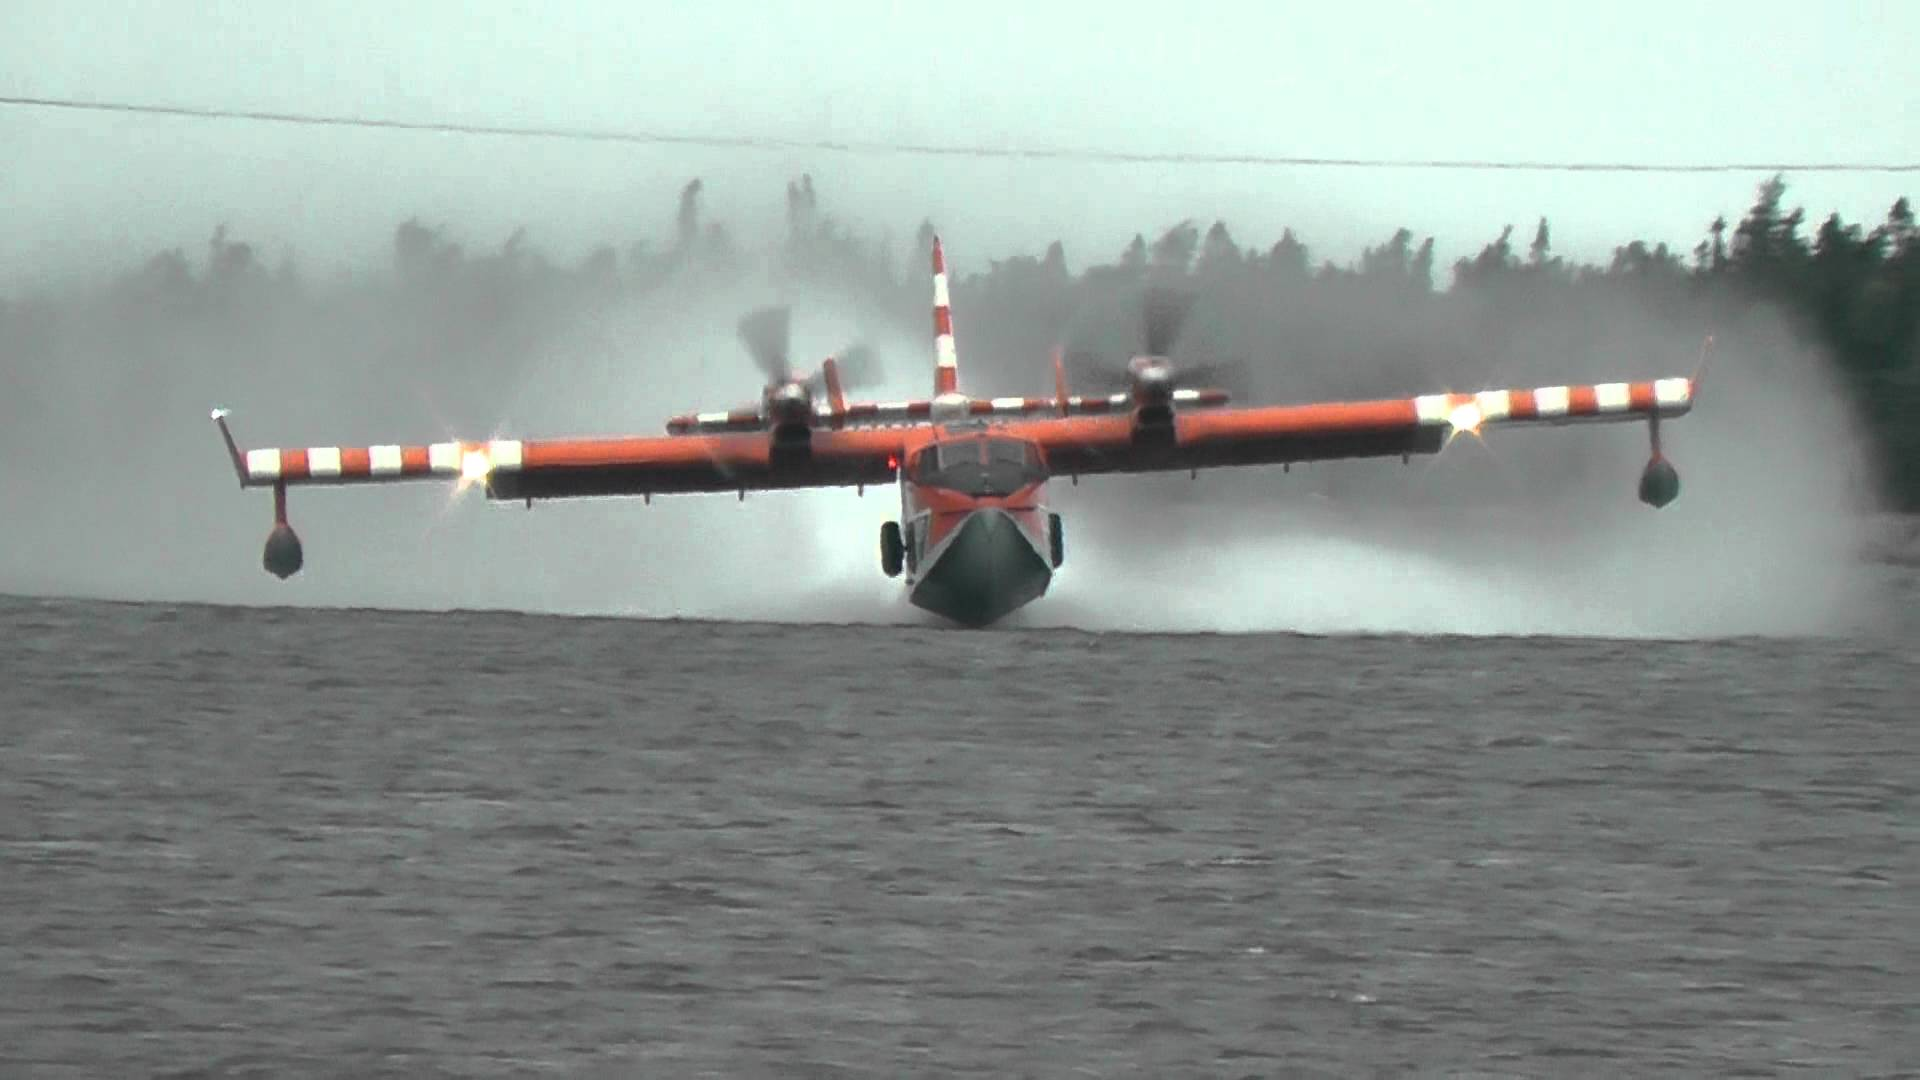 Water bomber photo